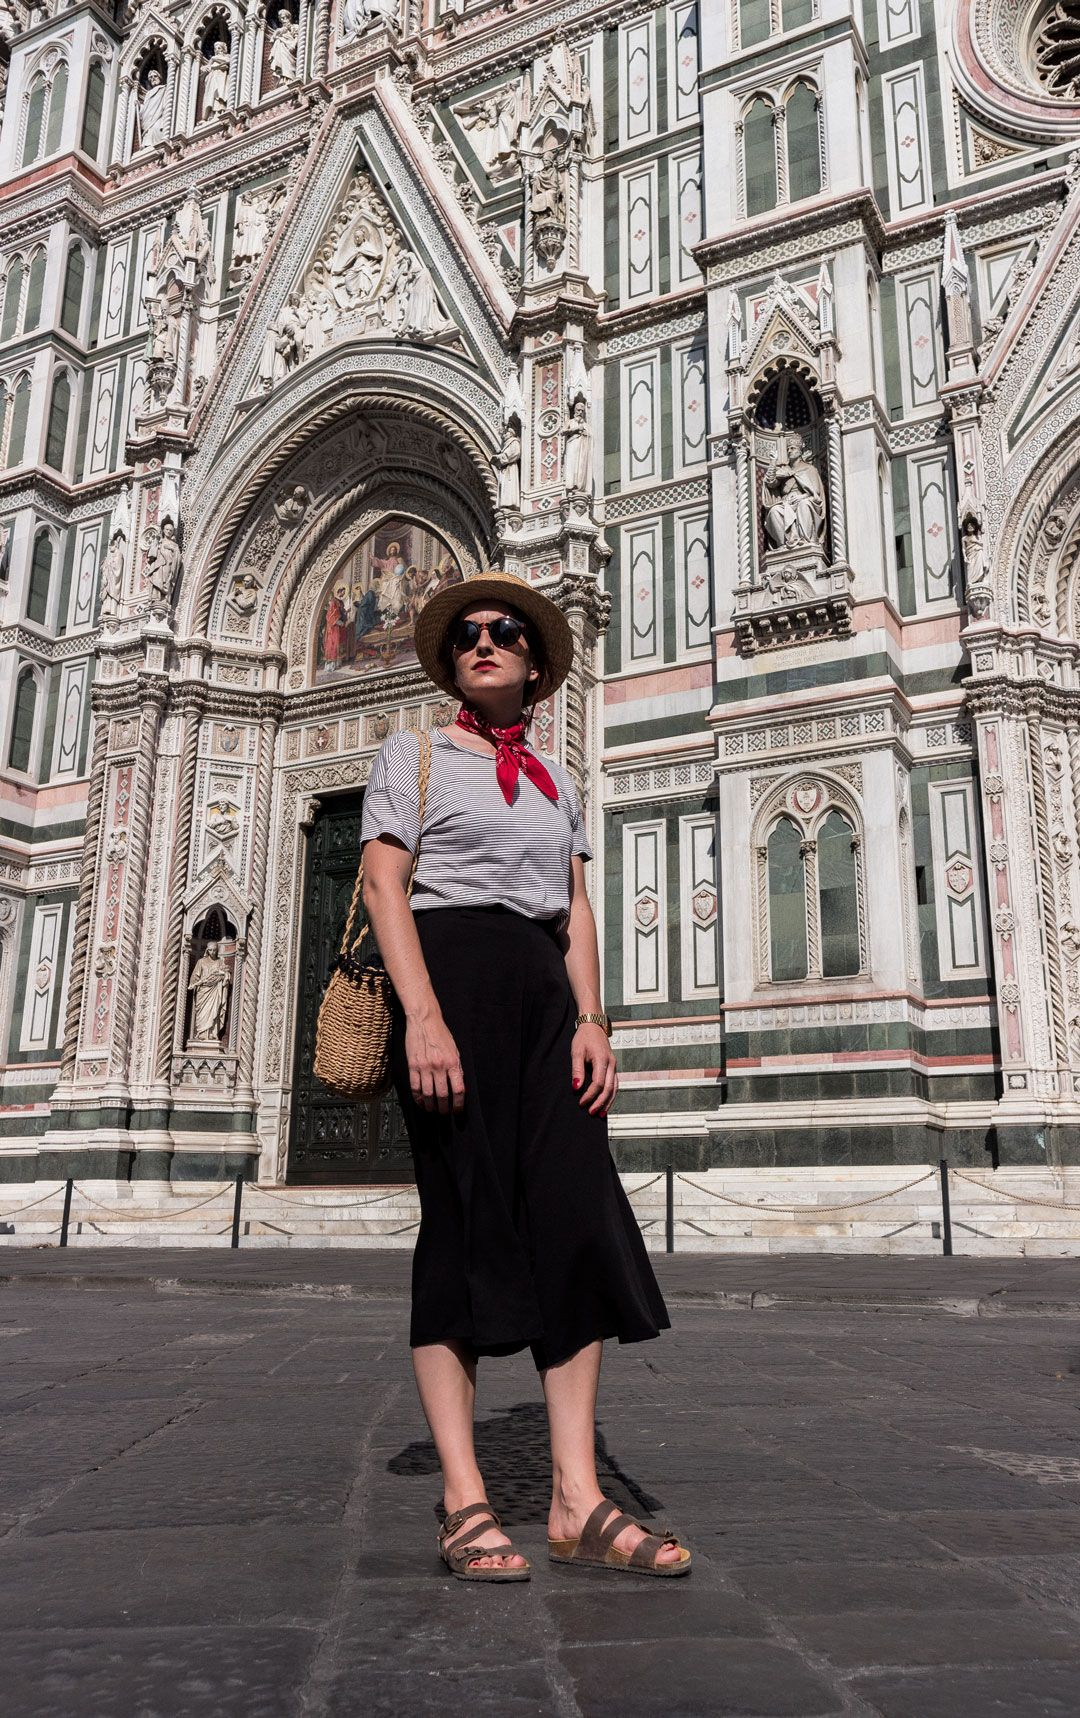 My Italian trip and how to dress for a hot summer in Tuscany   Effortless chic Italian style   Back culottes   How to style culottes   All black look   Red bandana   Stripes   Romantic look   Chic look   Summer outfit inspiration   Straw bag   Raffia bag   She talks Glam   Saida Antolin   Spanish Blogger   Italian Fashion   Canotier   Boater hat